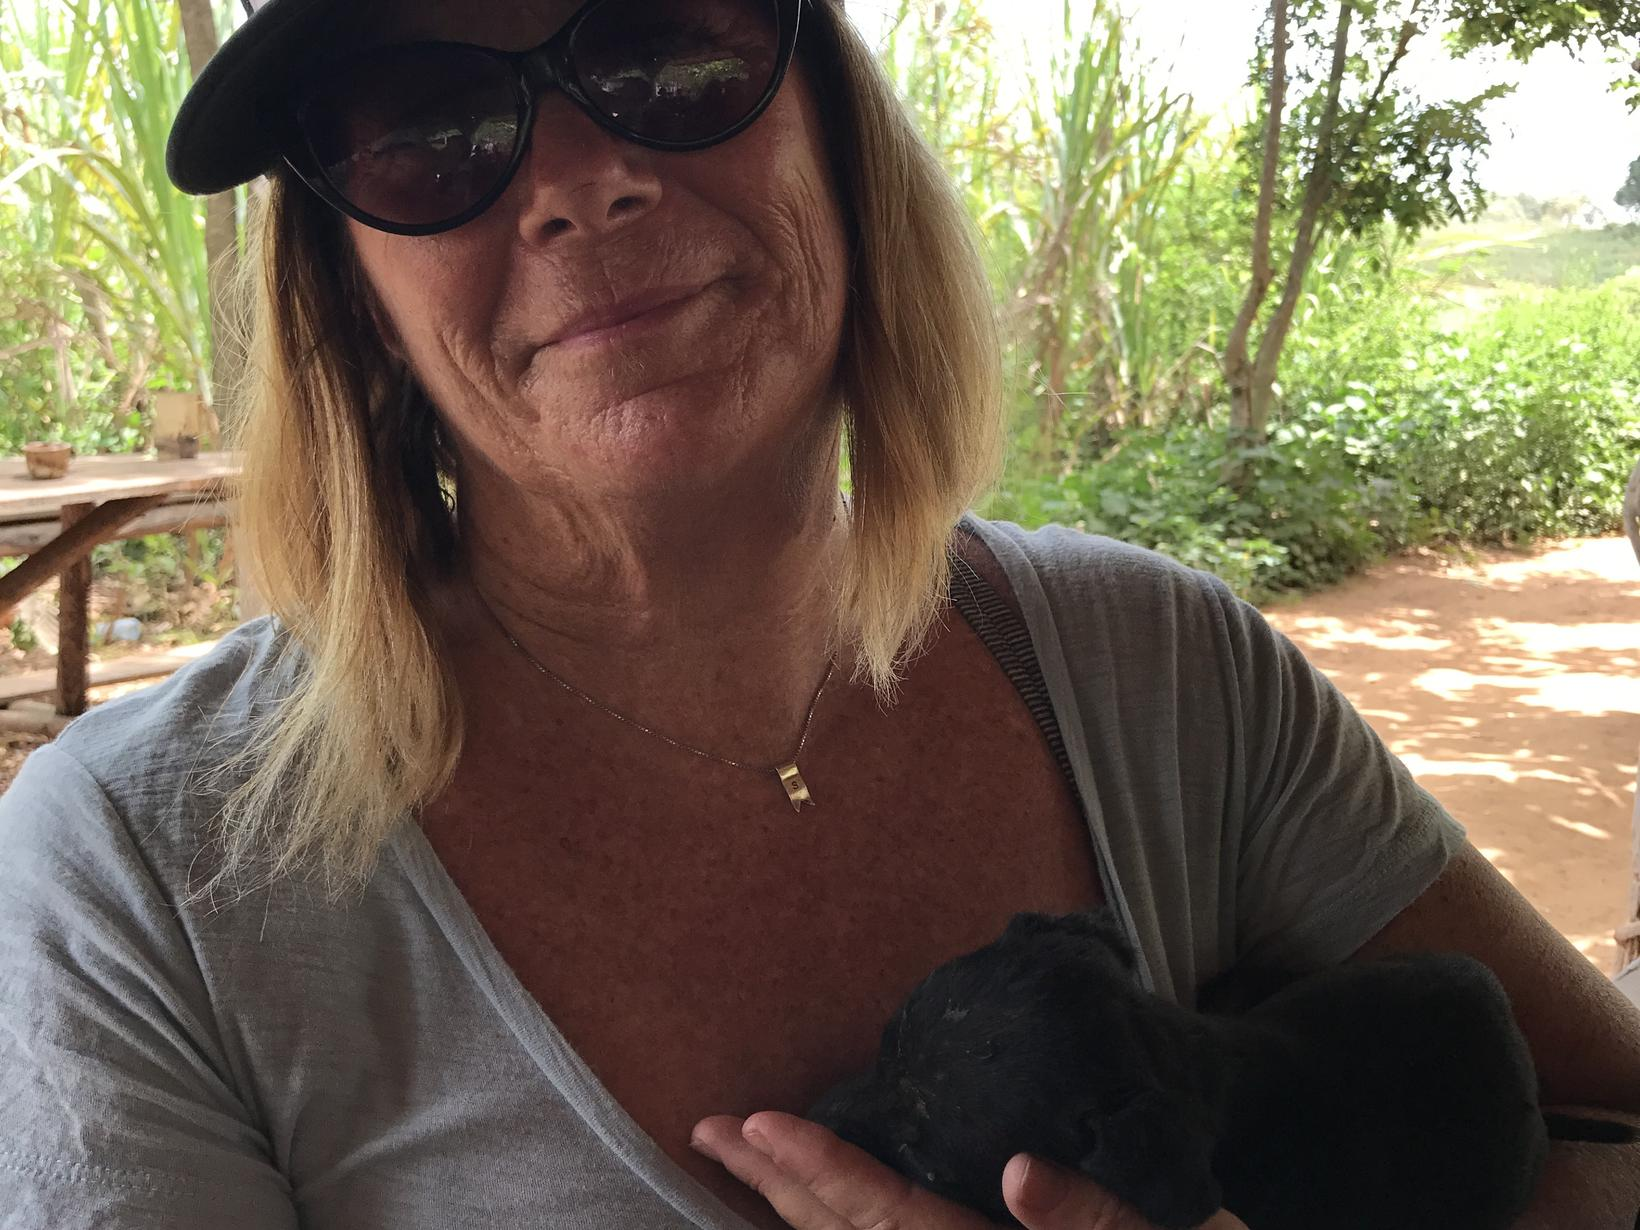 Sandie from Long Beach, California, United States